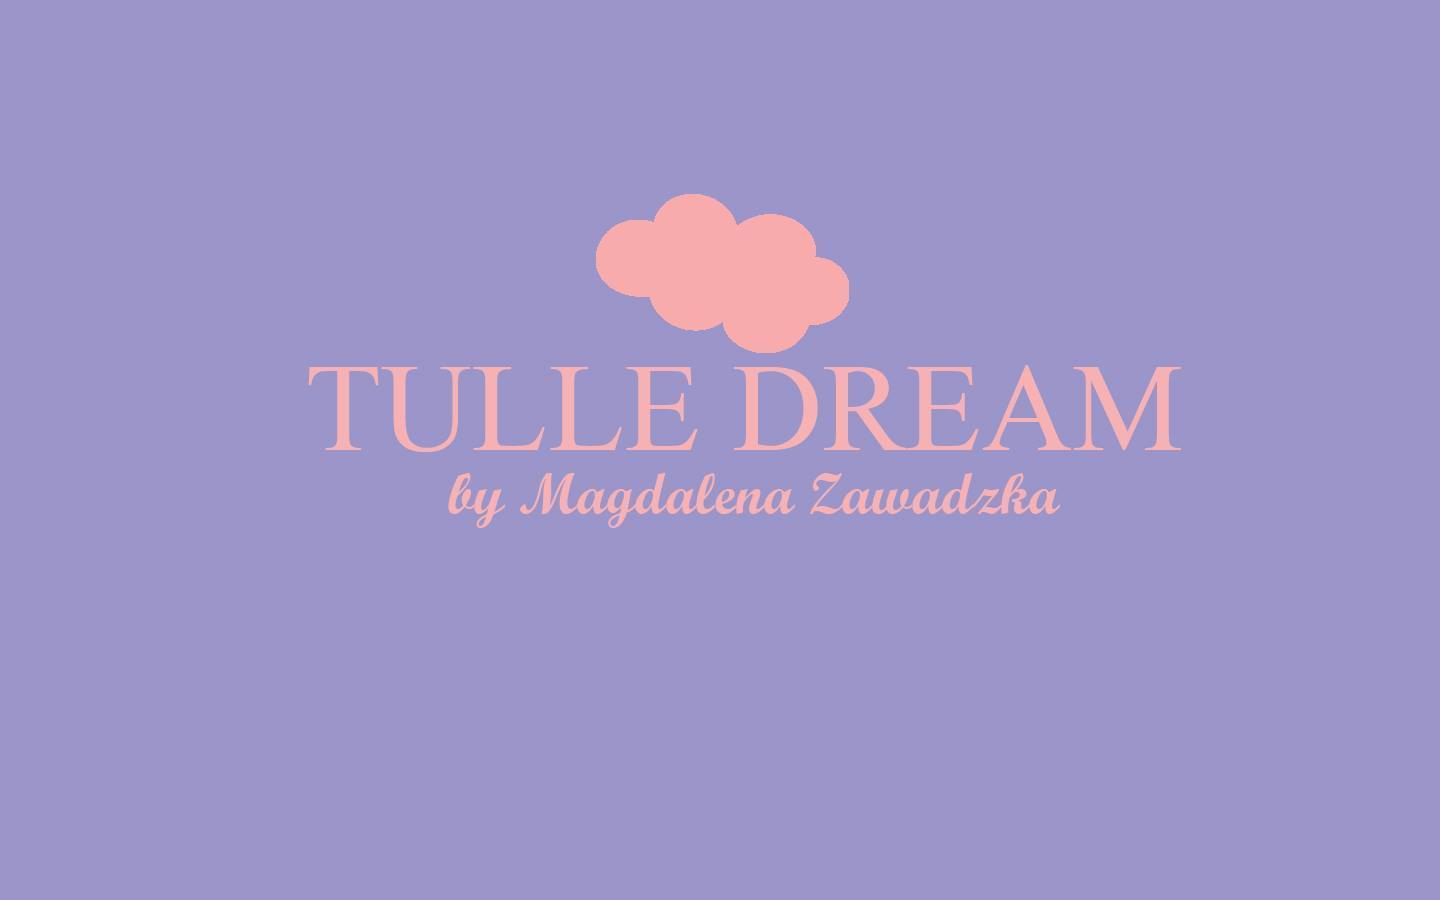 Tulle Dream